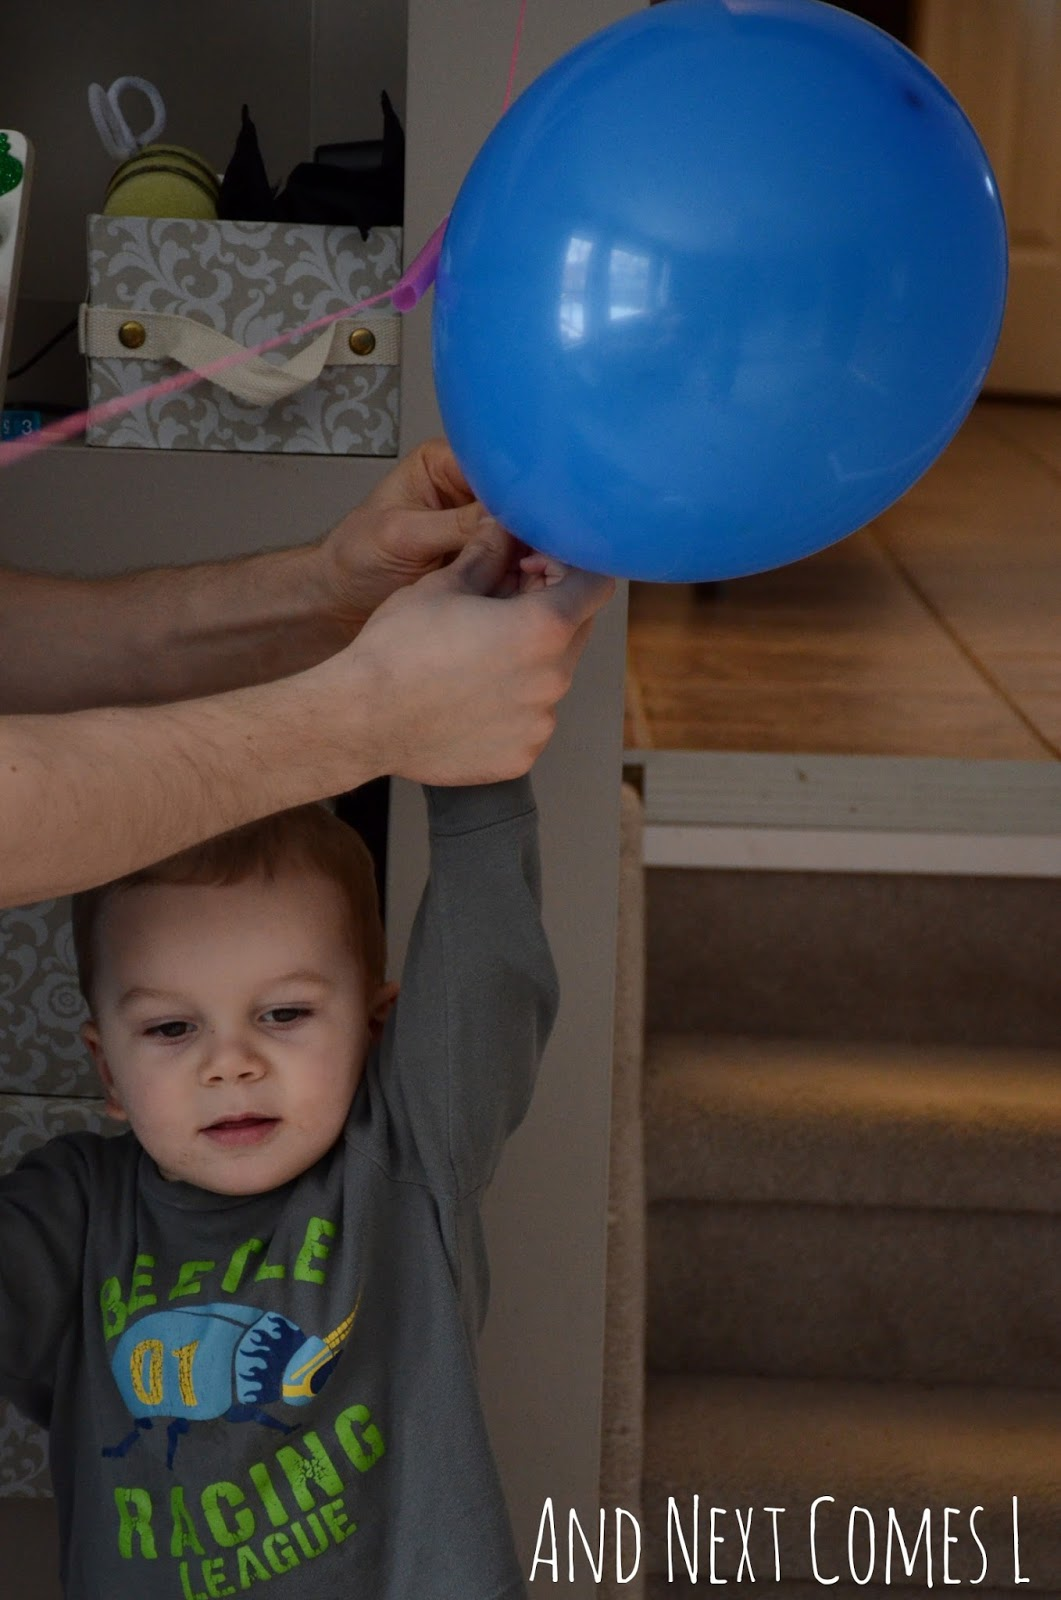 K and his balloon rocket from And Next Comes L